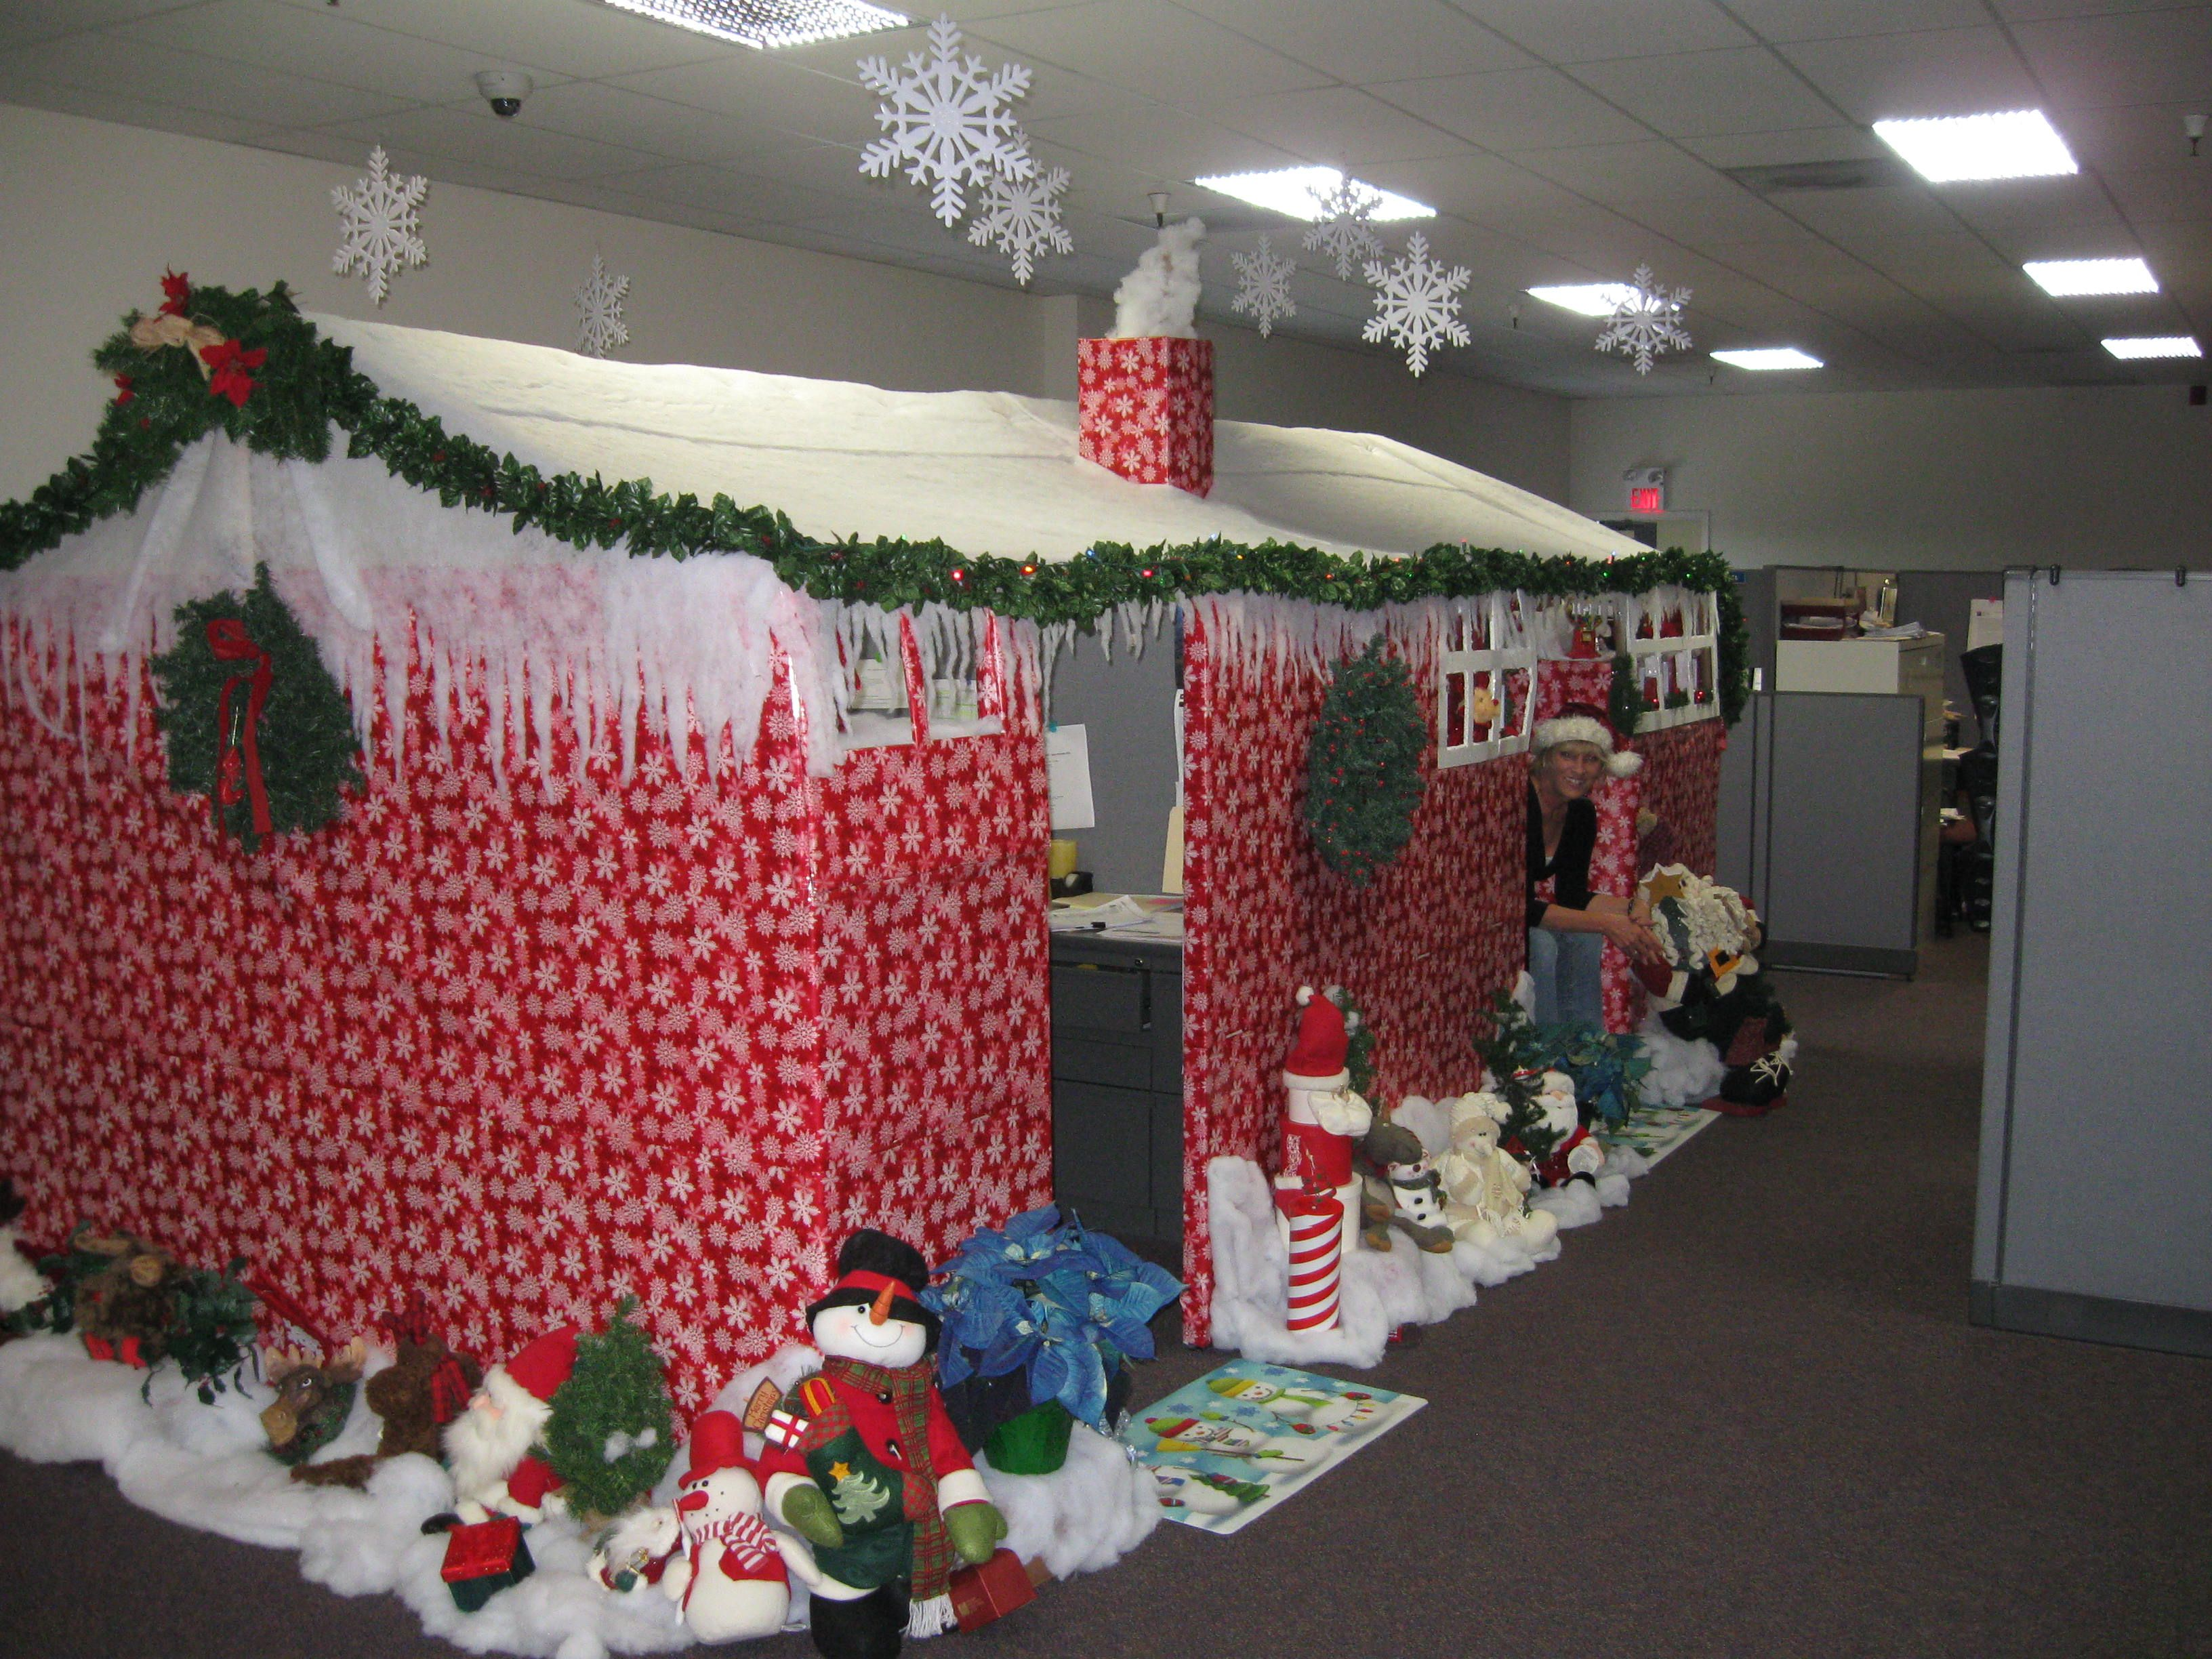 christmas office decorating ideas. 2 cubicles at work decorated for christmas office decorating ideas s